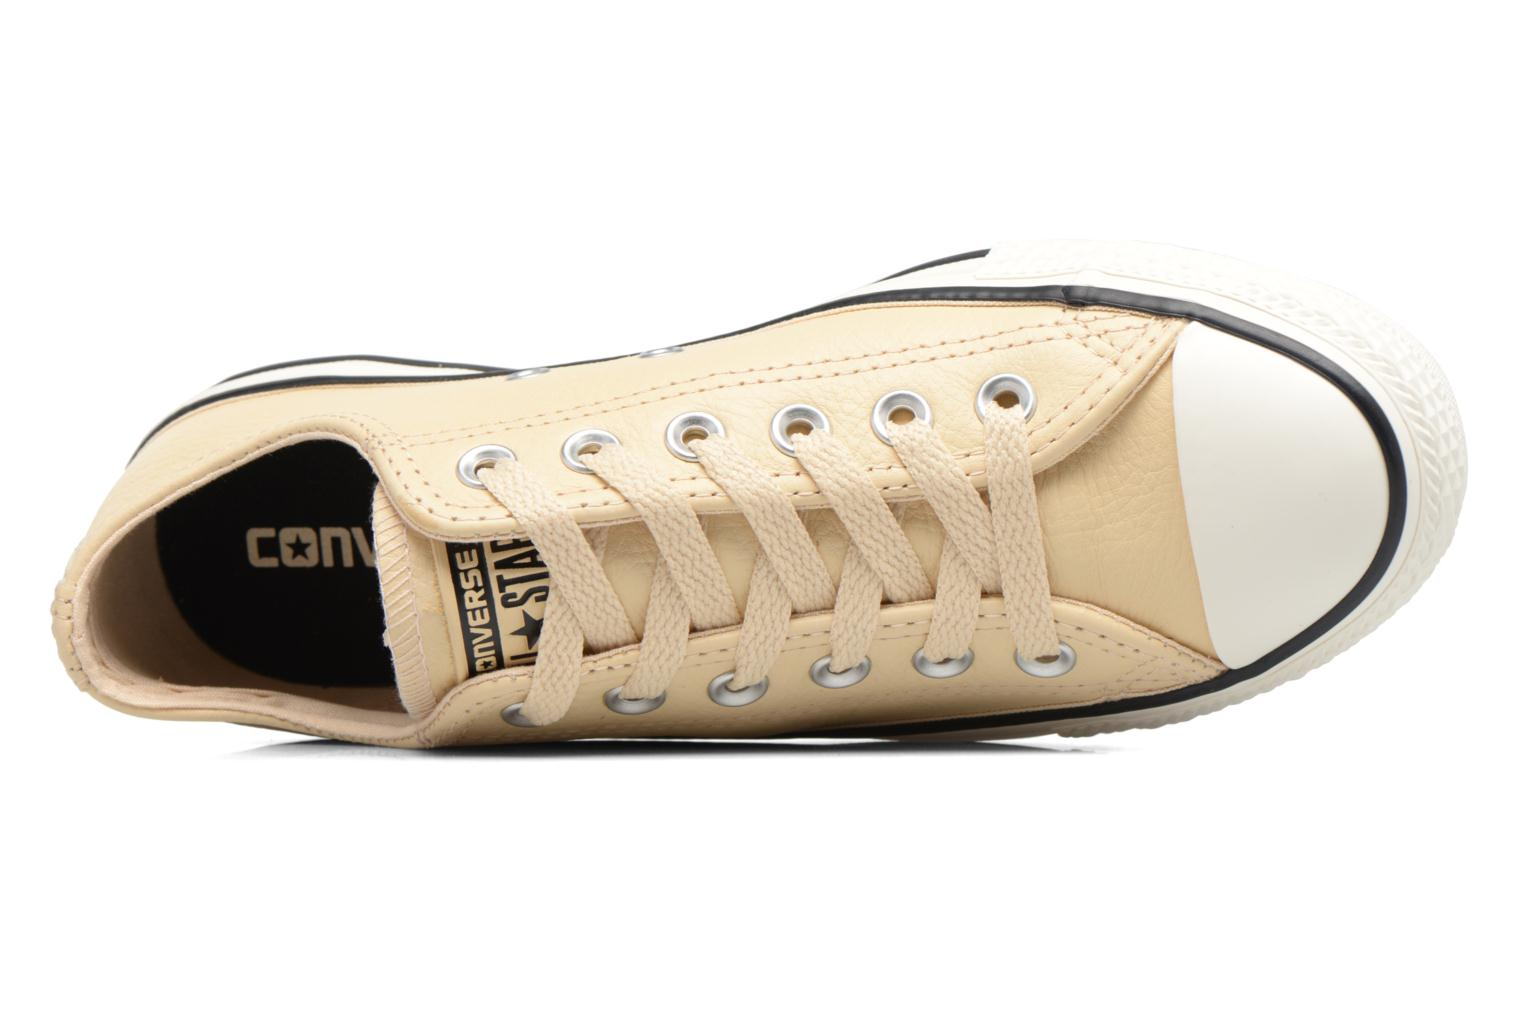 Chuck Taylor All Star Tumbled Leather Ox Light Twine/Light Twine/Egret